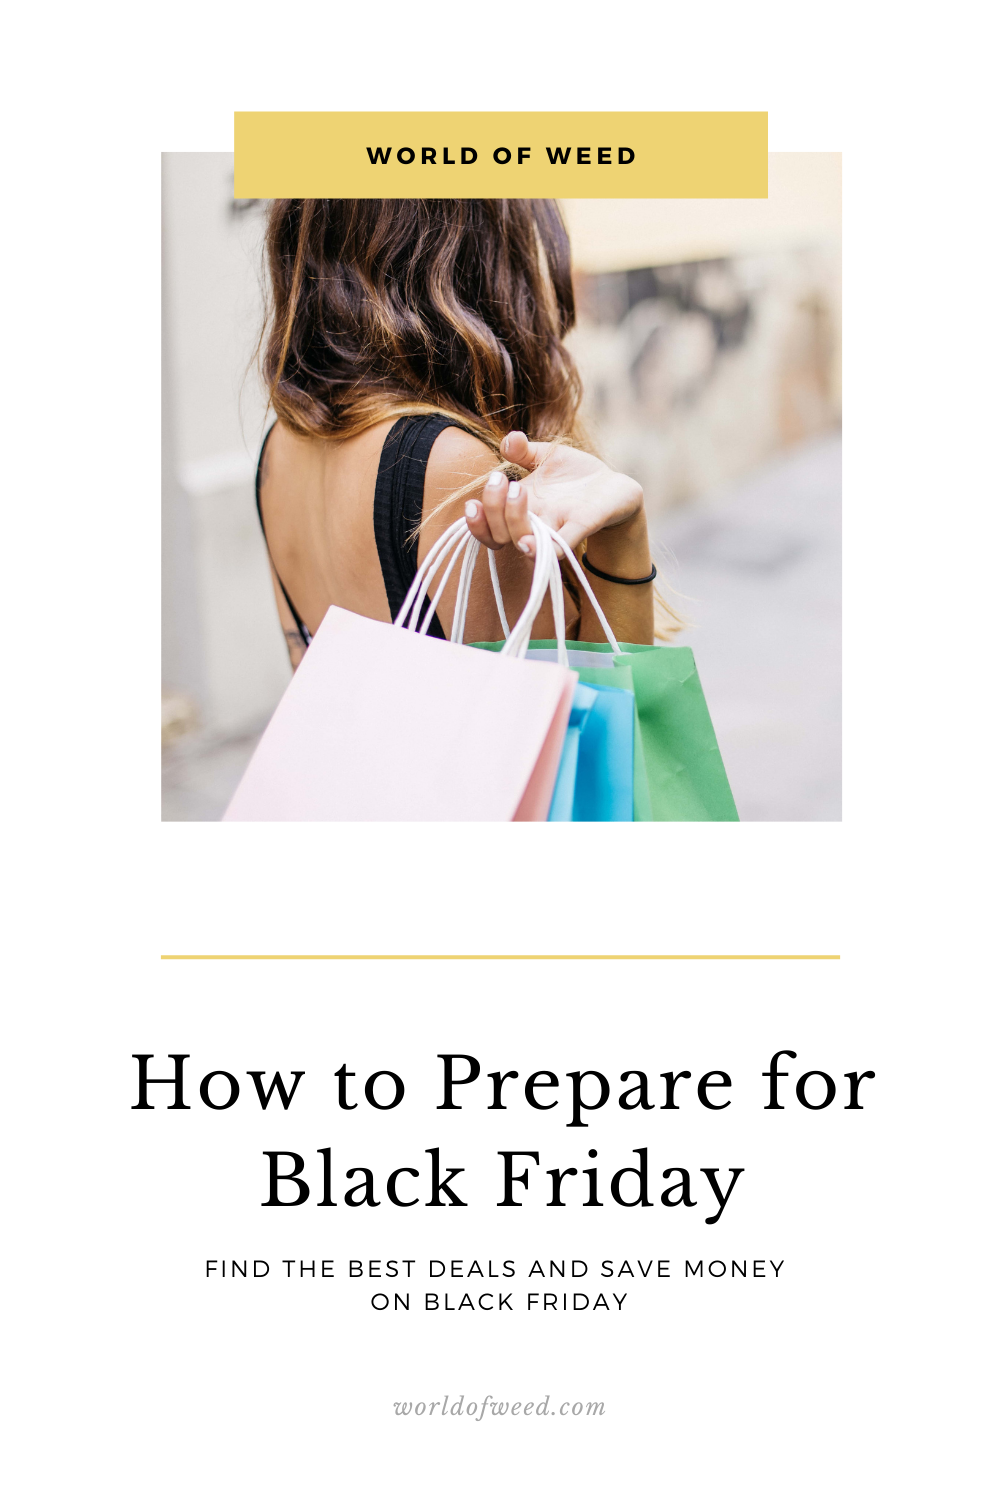 How to Prepare for Black Friday